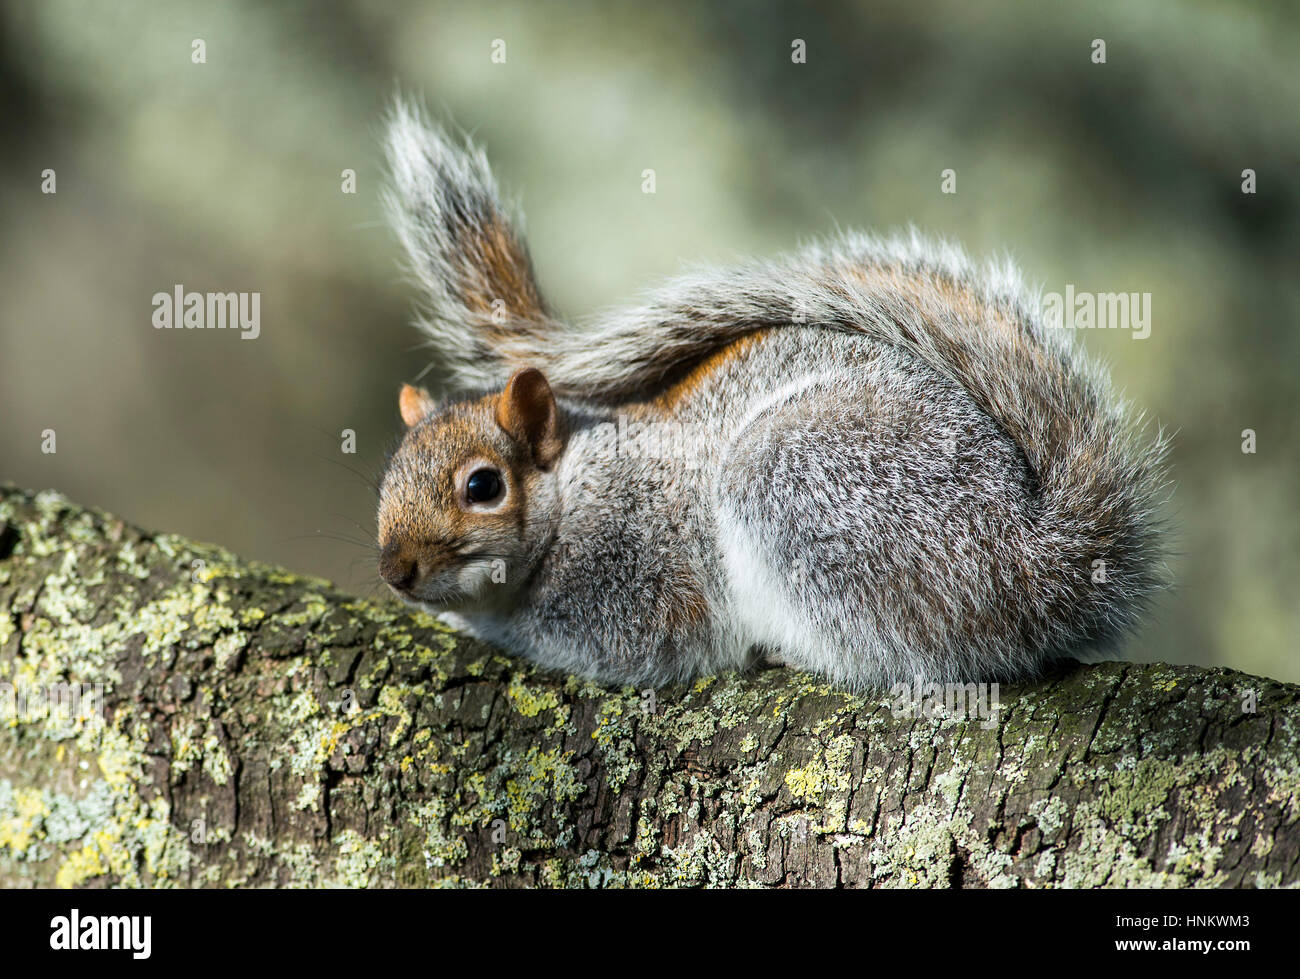 Eastern grey squirrel Sciurus carolinensis resting on a branch of a tree in park. - Stock Image